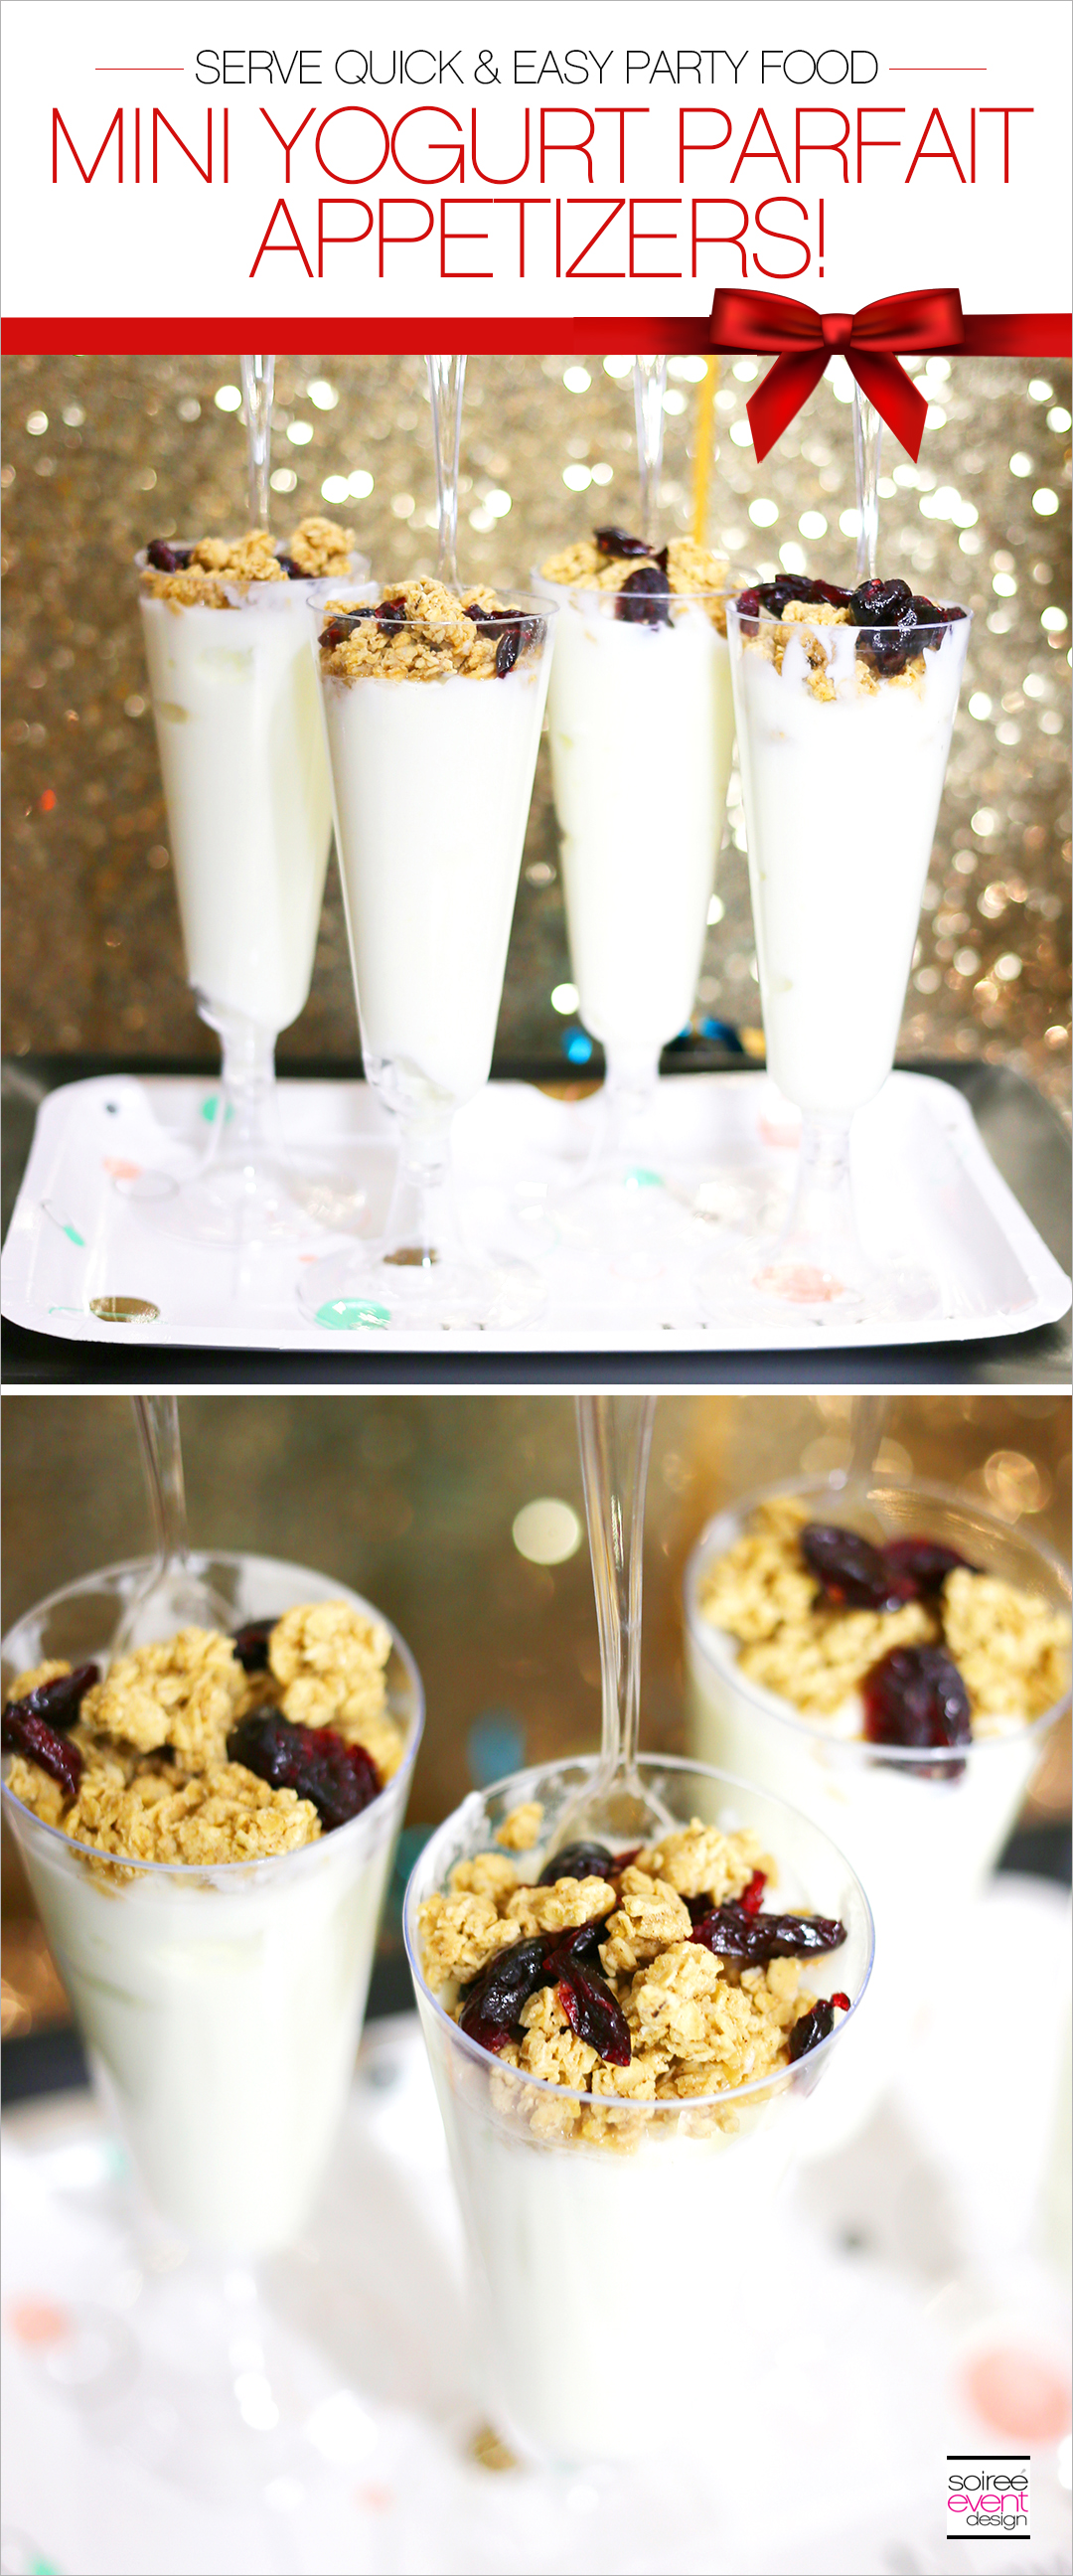 Mini Yogurt Parfait Appetizers